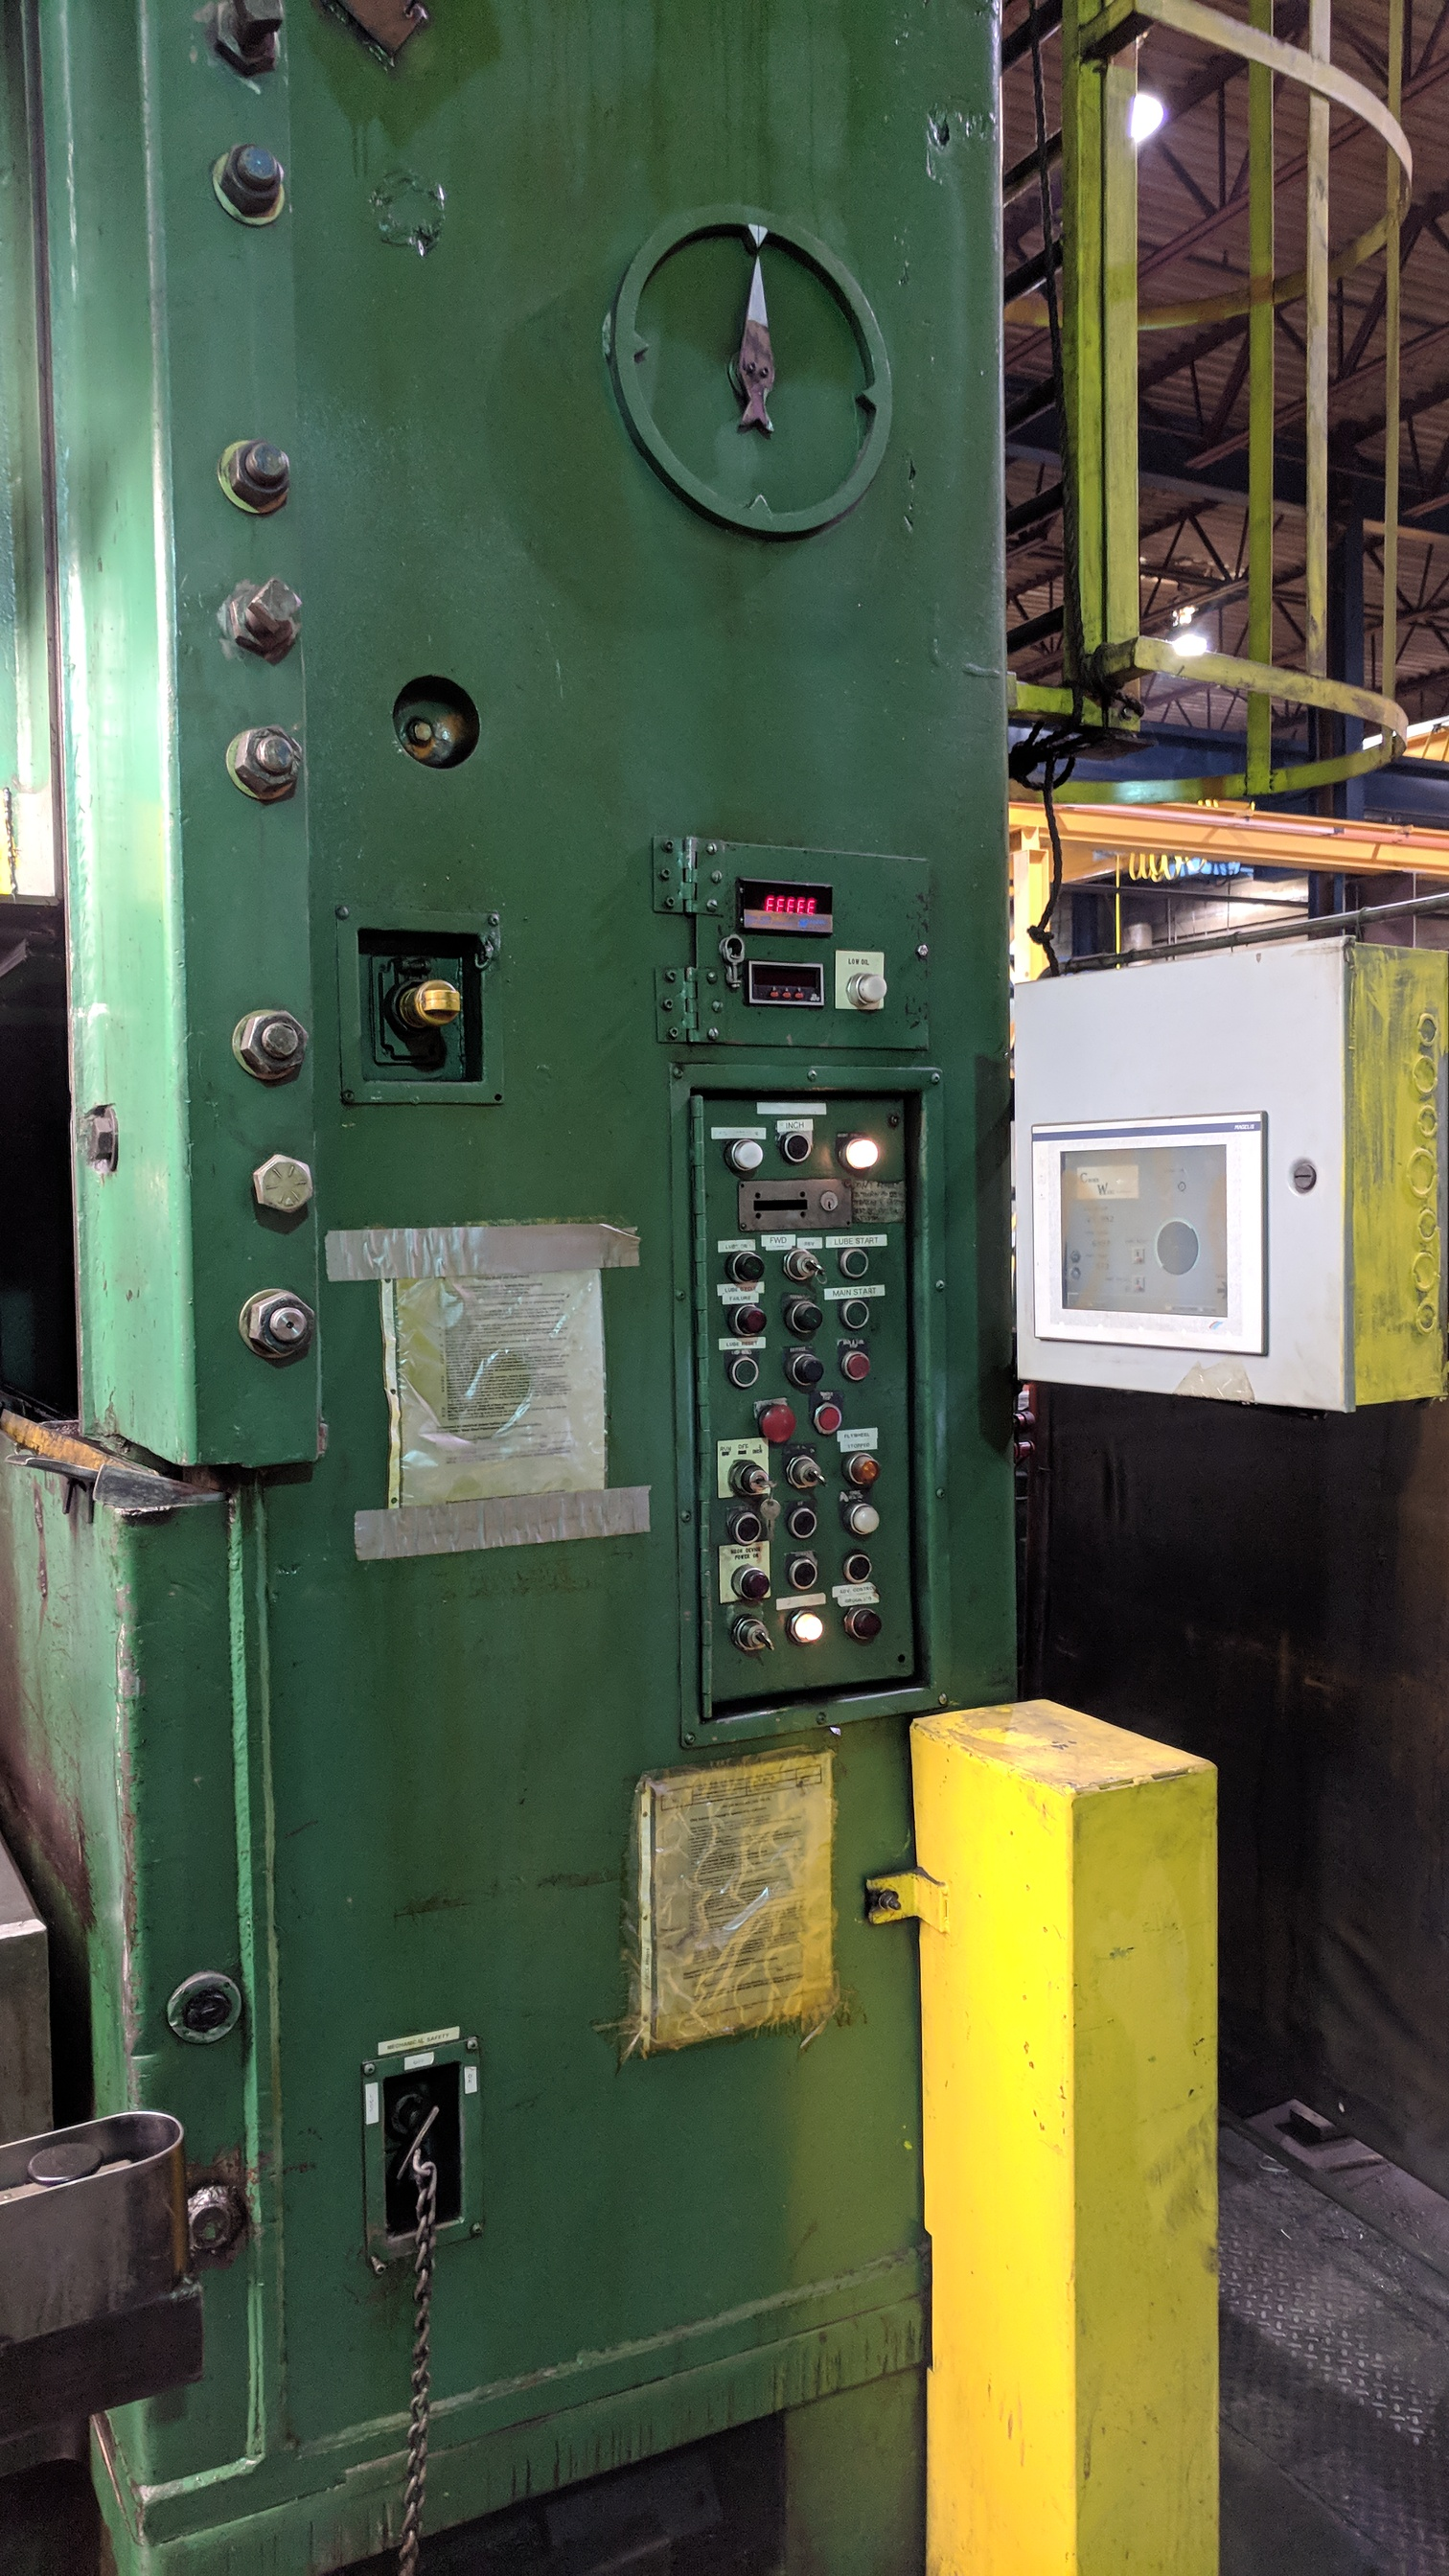 """BLISS SE4-600-108X72 600 TON CAPACITY STRAIGHT SIDE PRESS WITH MAGELIS 2000 PLC CONTROL, 108""""X72"""" - Image 11 of 21"""